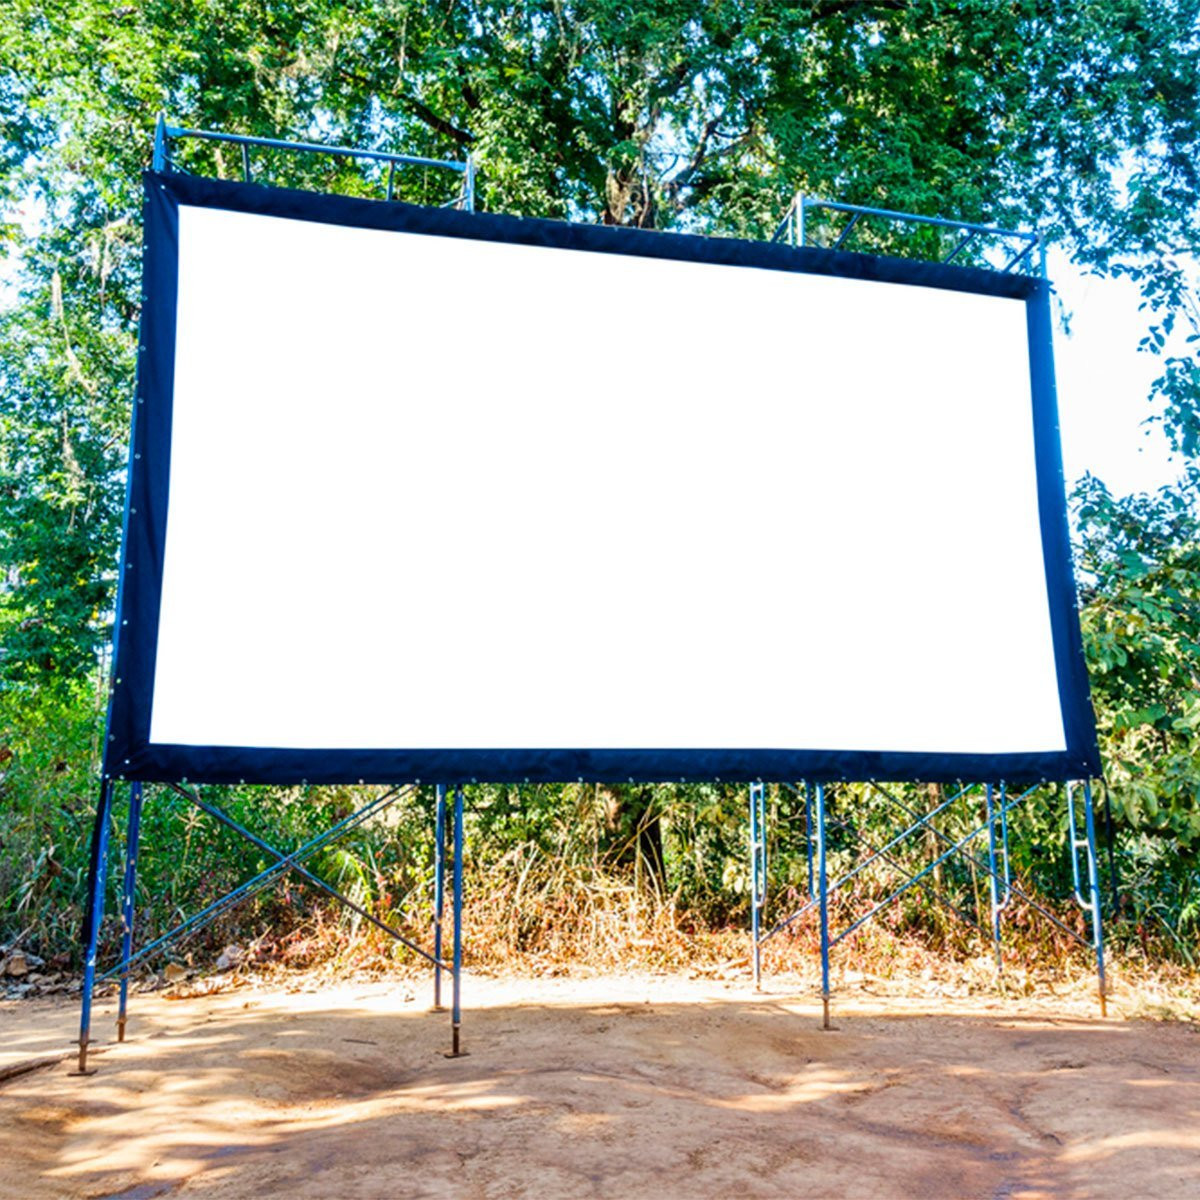 Outdoor Movie Screen DIY  What You Need for a DIY Backyard Movie Theater